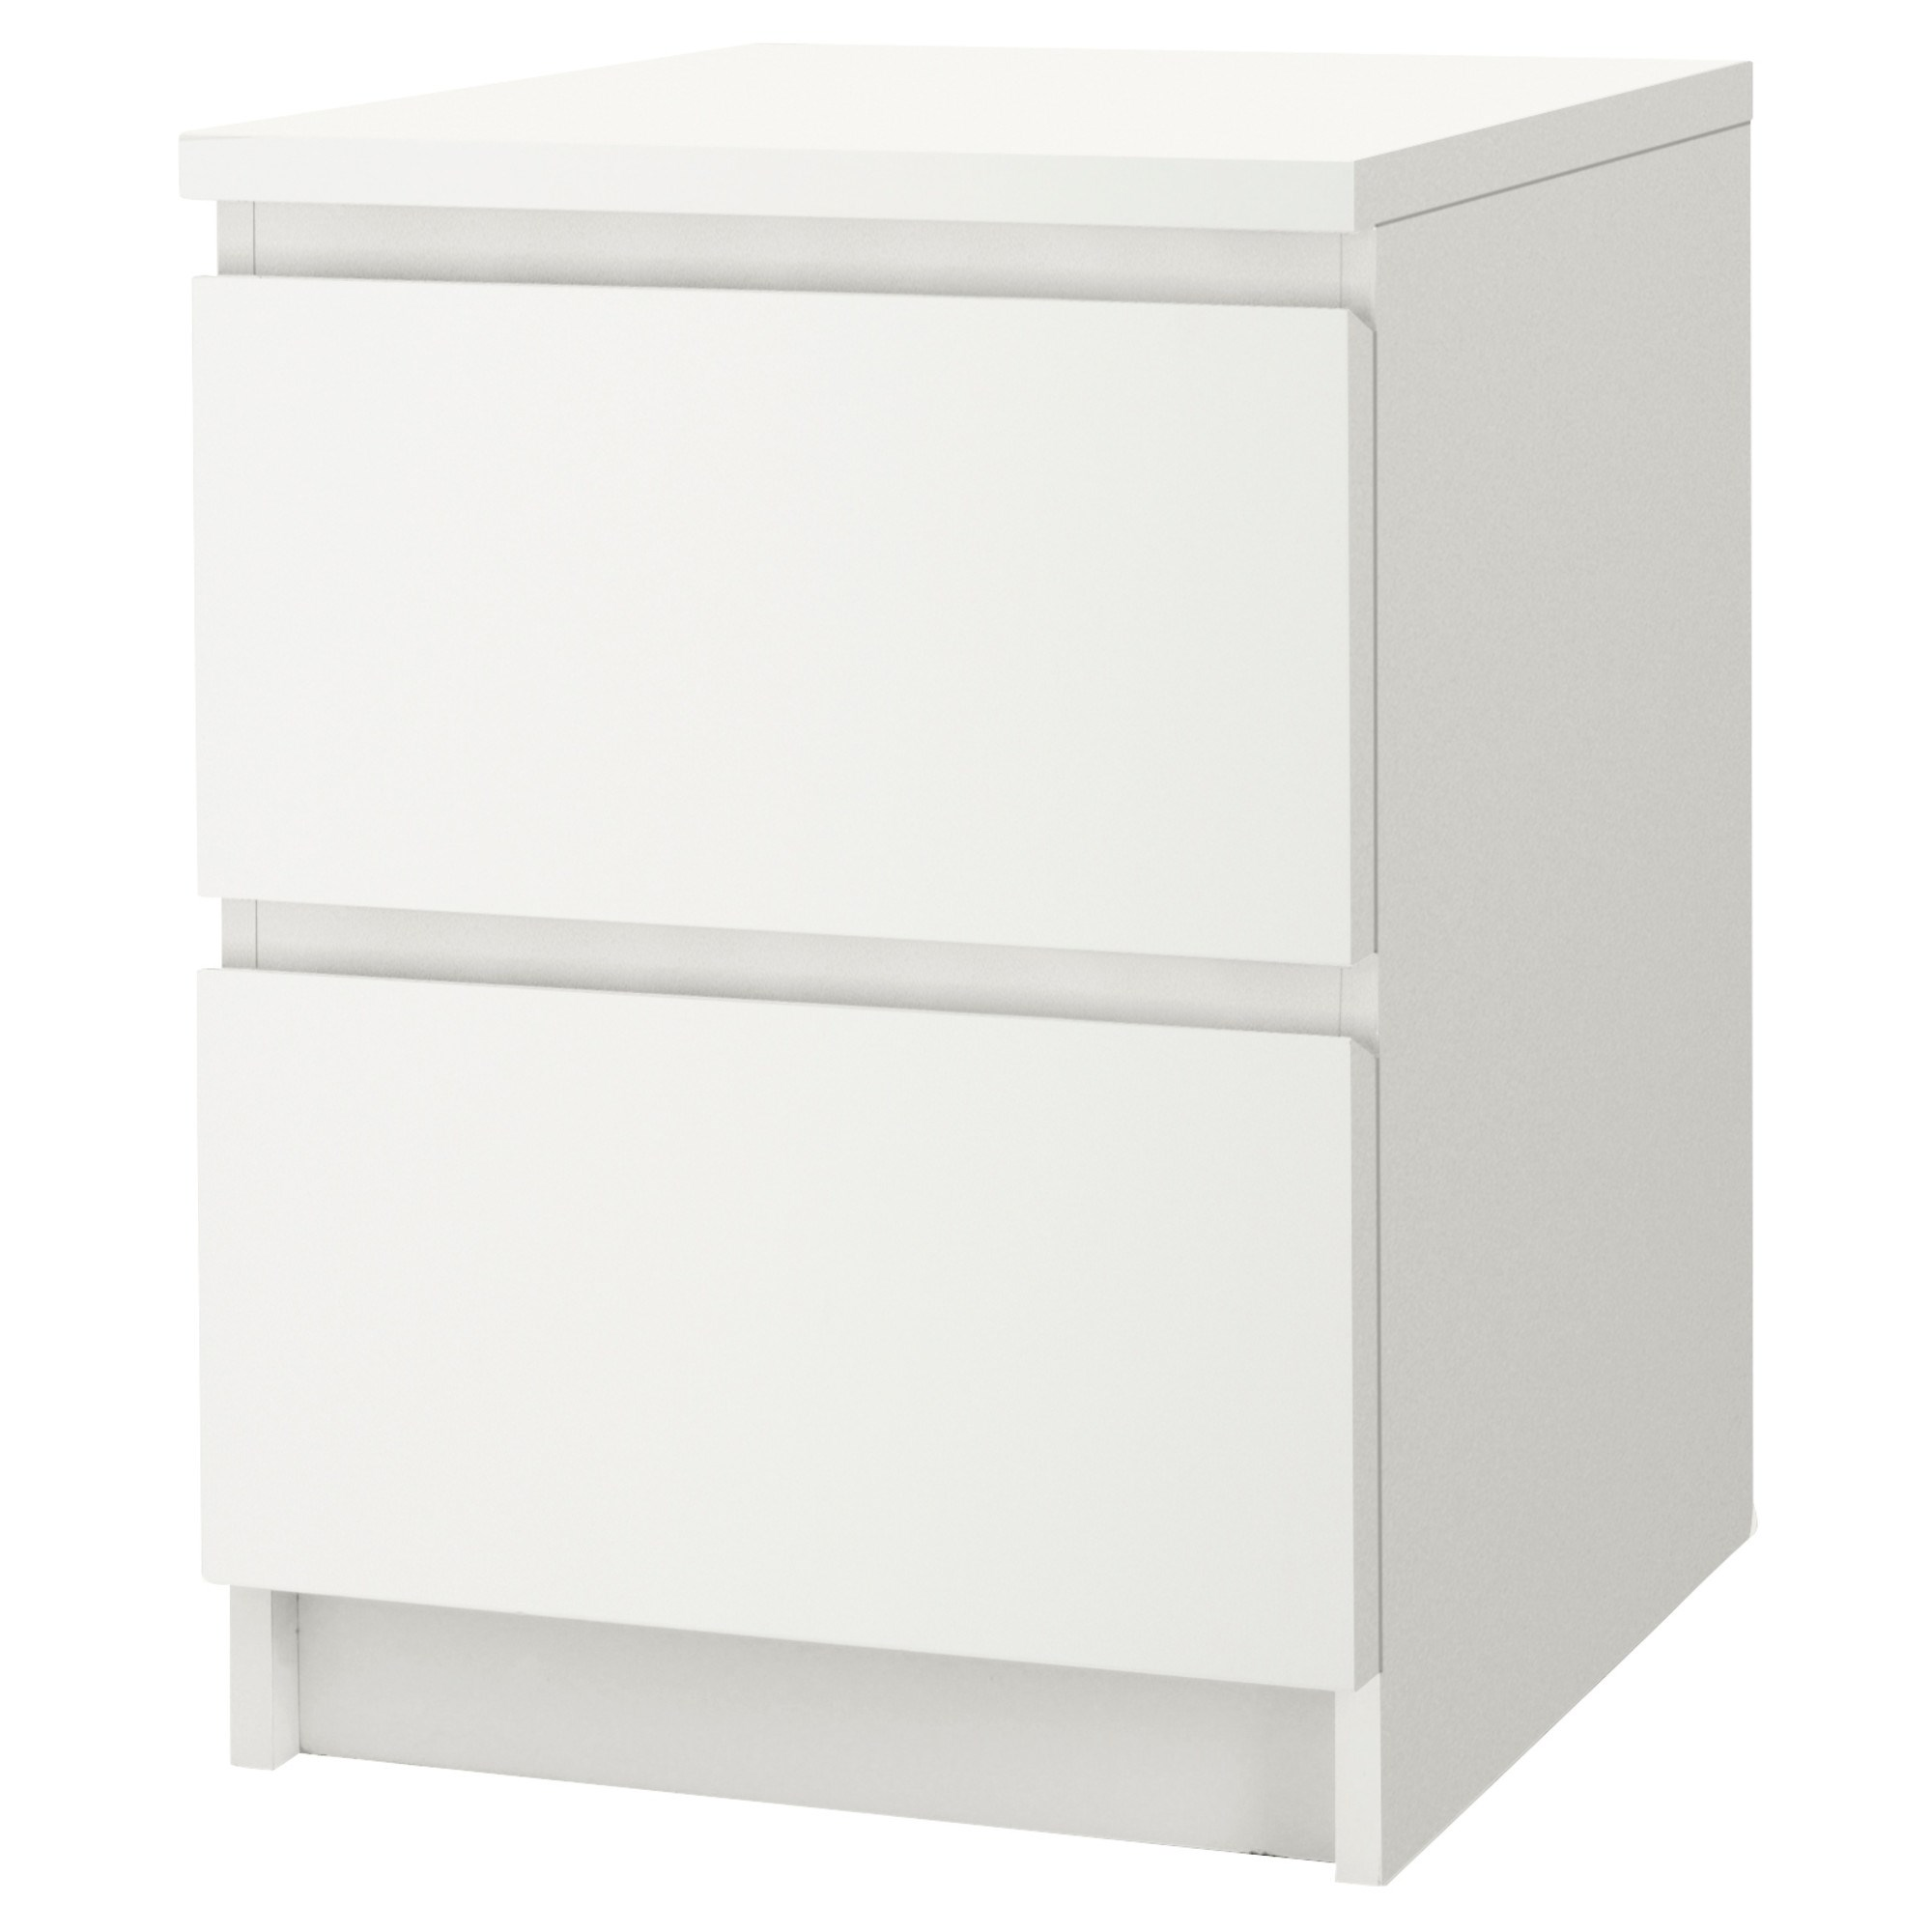 malm chest of 2 drawers bedside table white 40x55 cm ikea bedroom